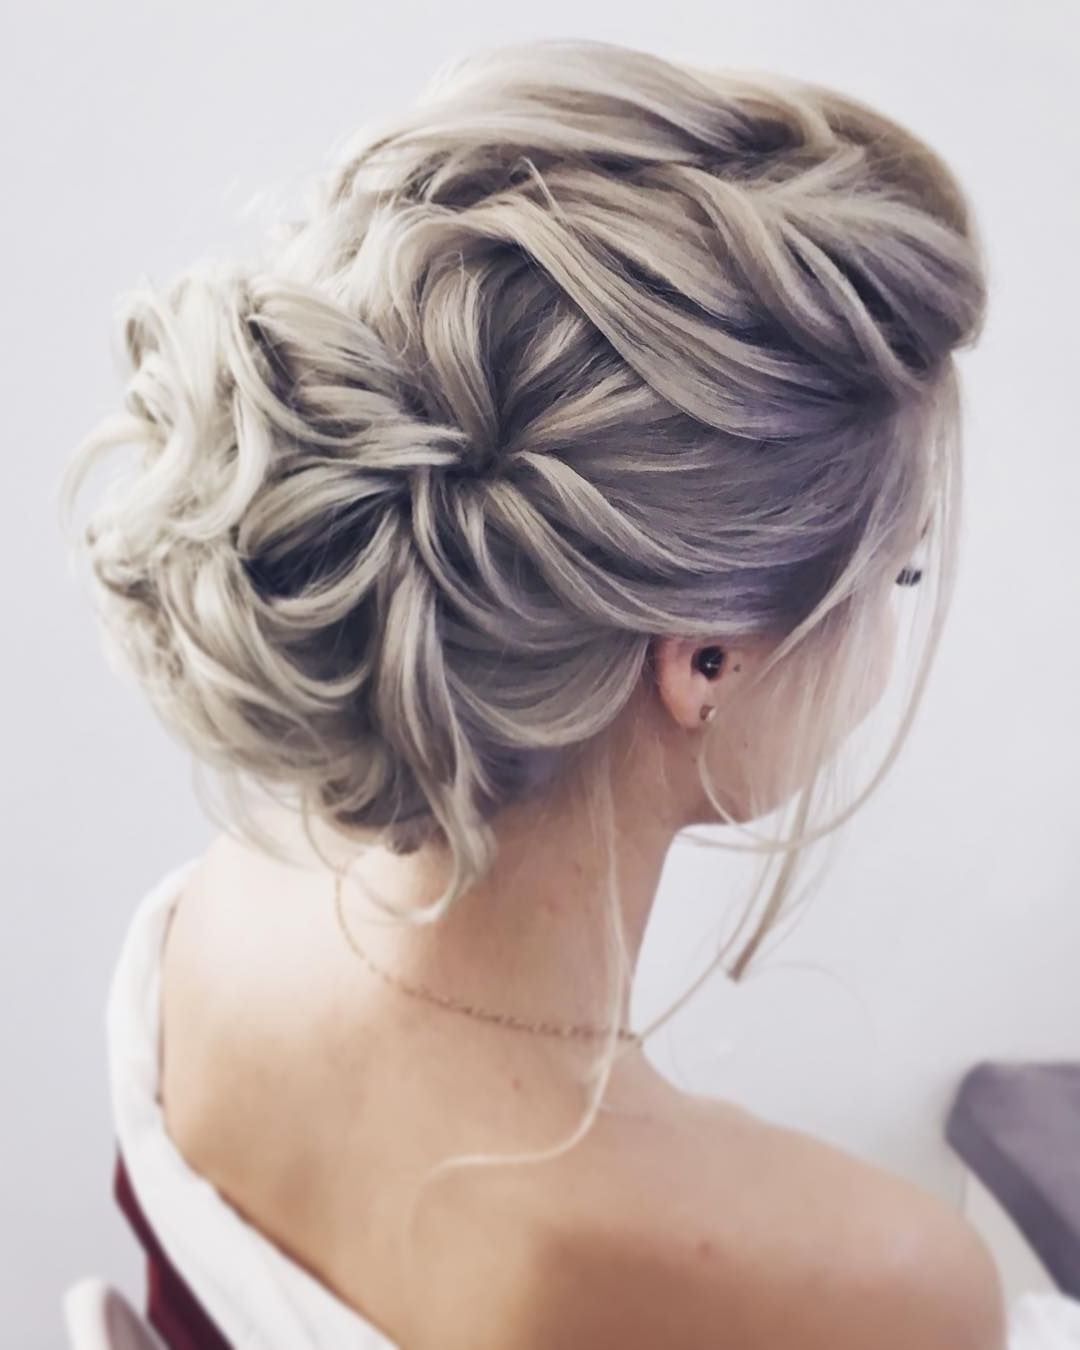 Hair Dos For Wedding Updos Weddings Hairstyles Short Half Up Long Inside Most Current Wedding Hairstyles (Gallery 9 of 15)